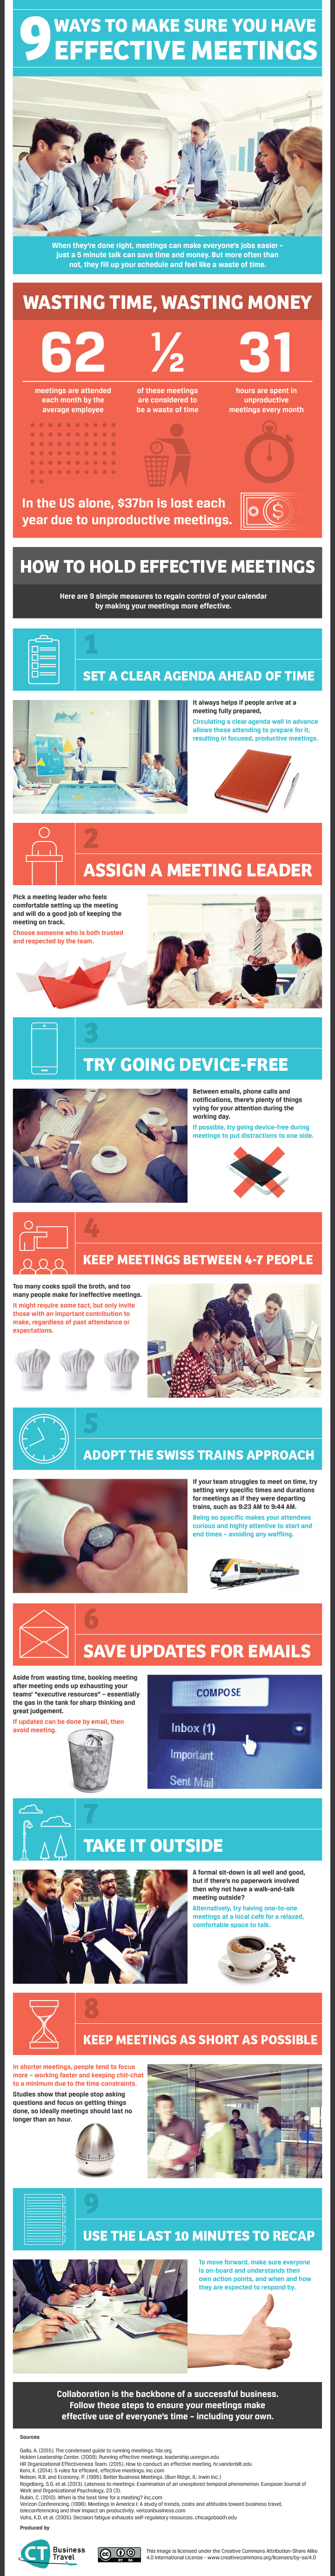 9-ways-to-make-sure-you-have-effective-meetings 9 Surefire Ways to Have Effective Meetings (Infographic)